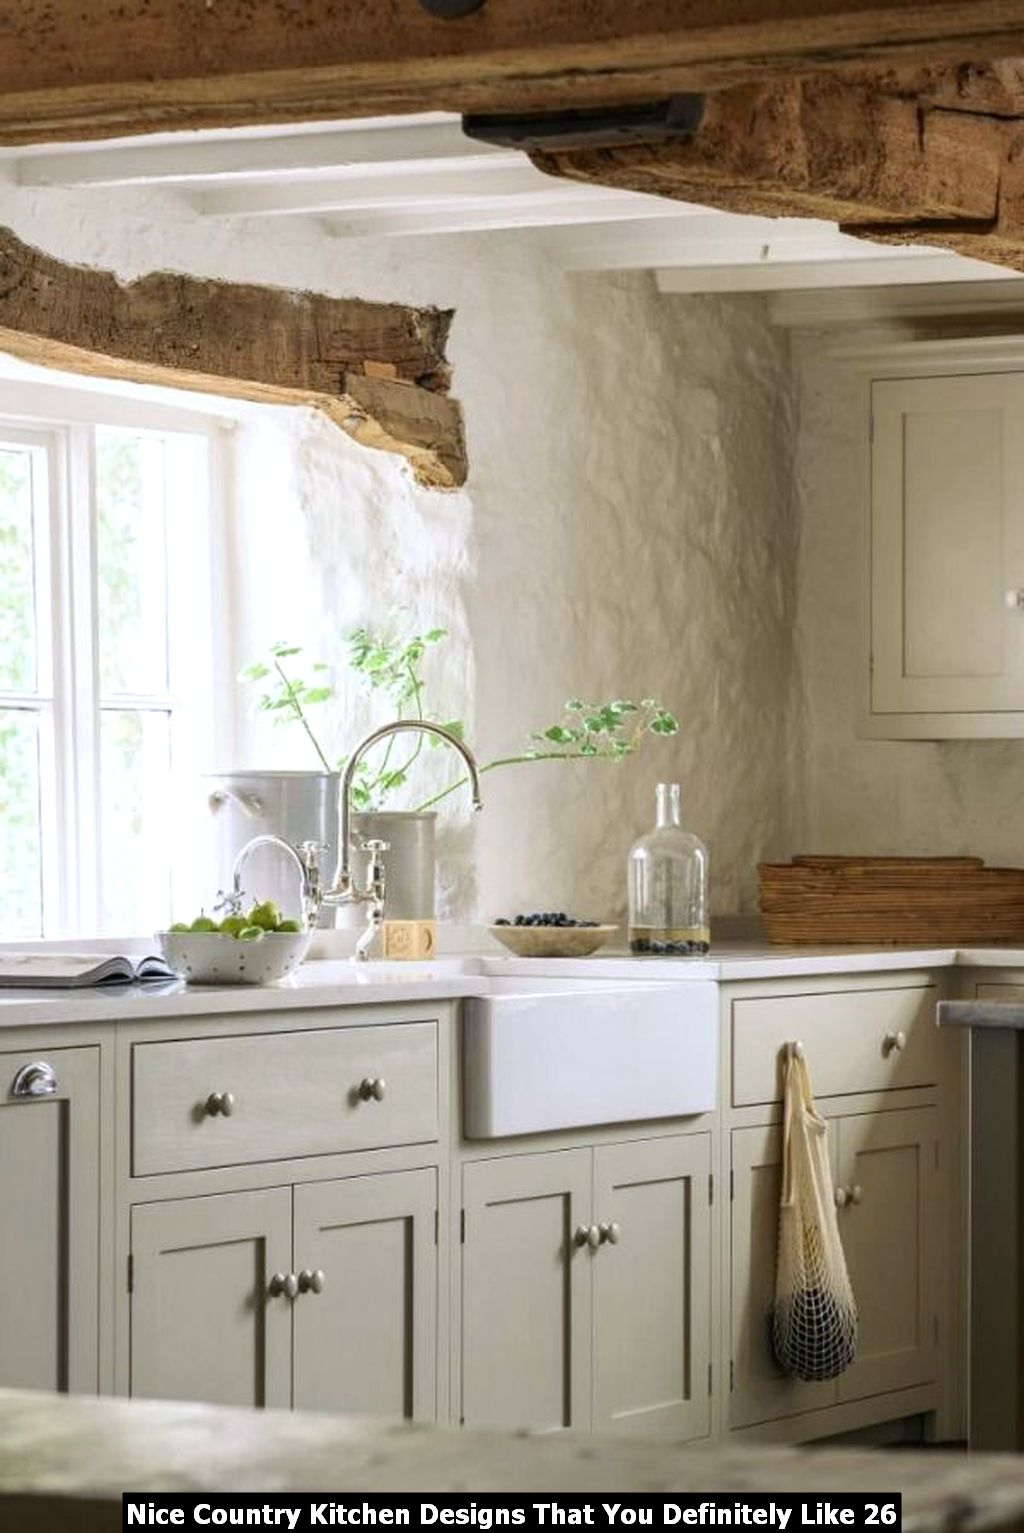 Nice Country Kitchen Designs That You Definitely Like 26